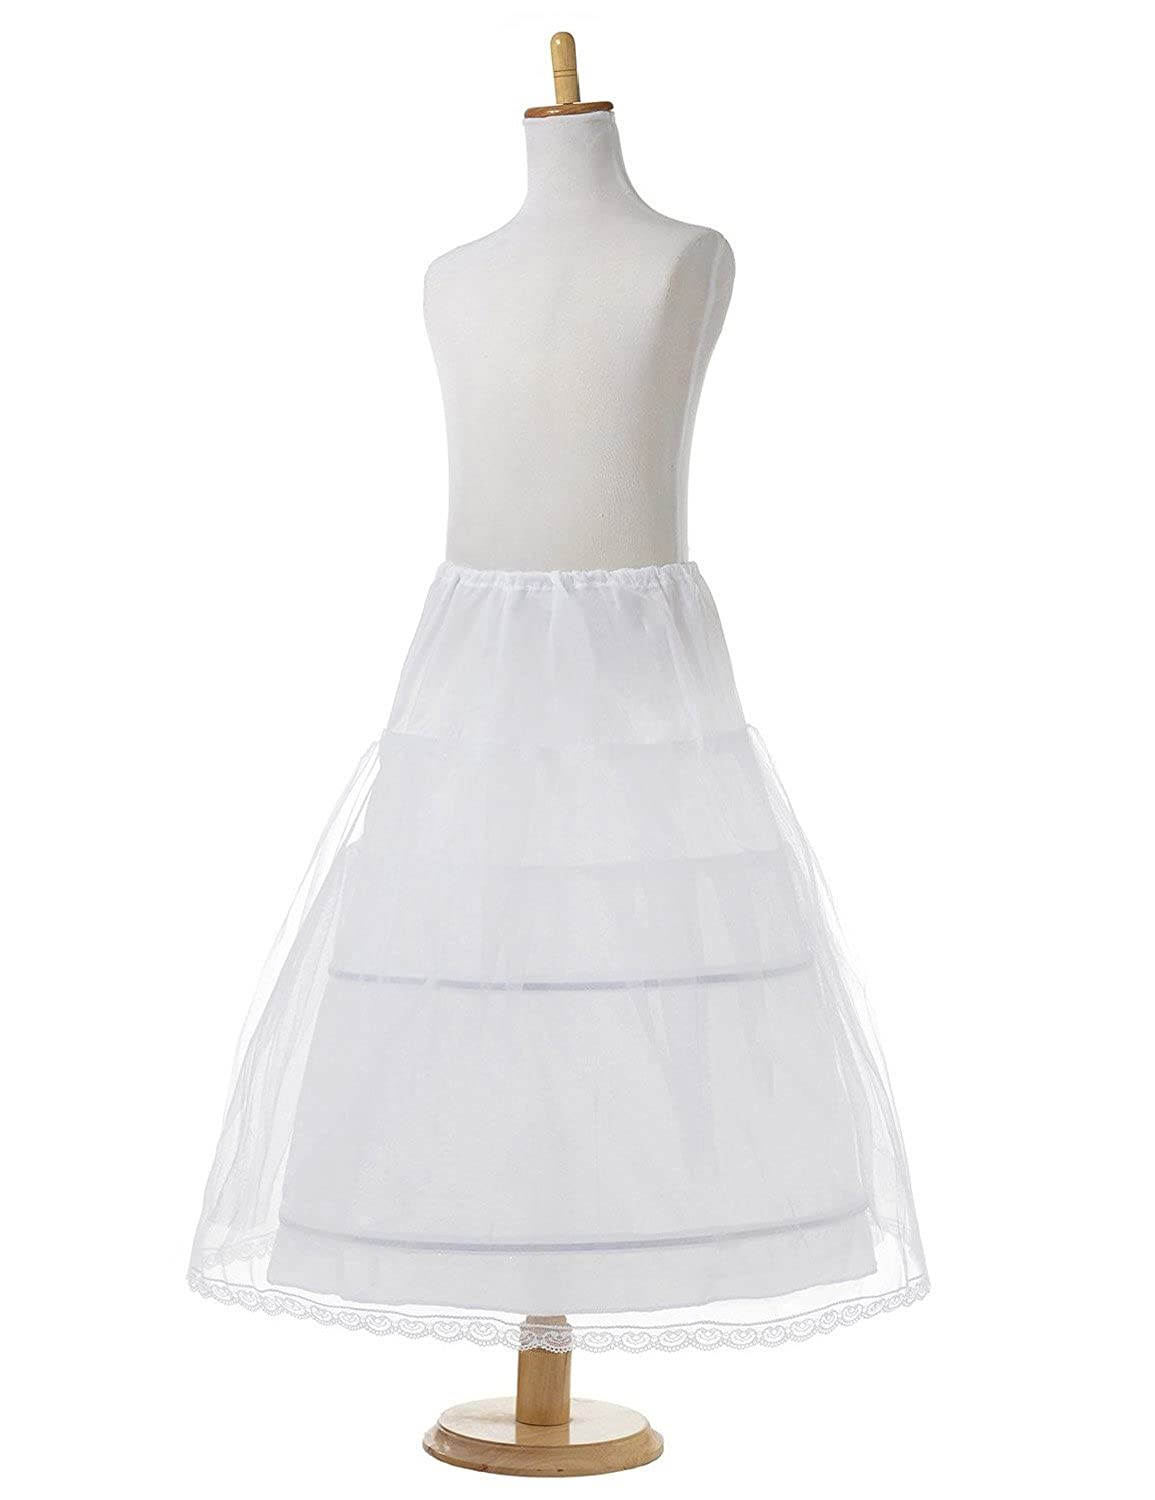 AliceHouse Girls 2 Hoop Flower Girl Crinoline Wedding Petticoat Underskirt MPC021